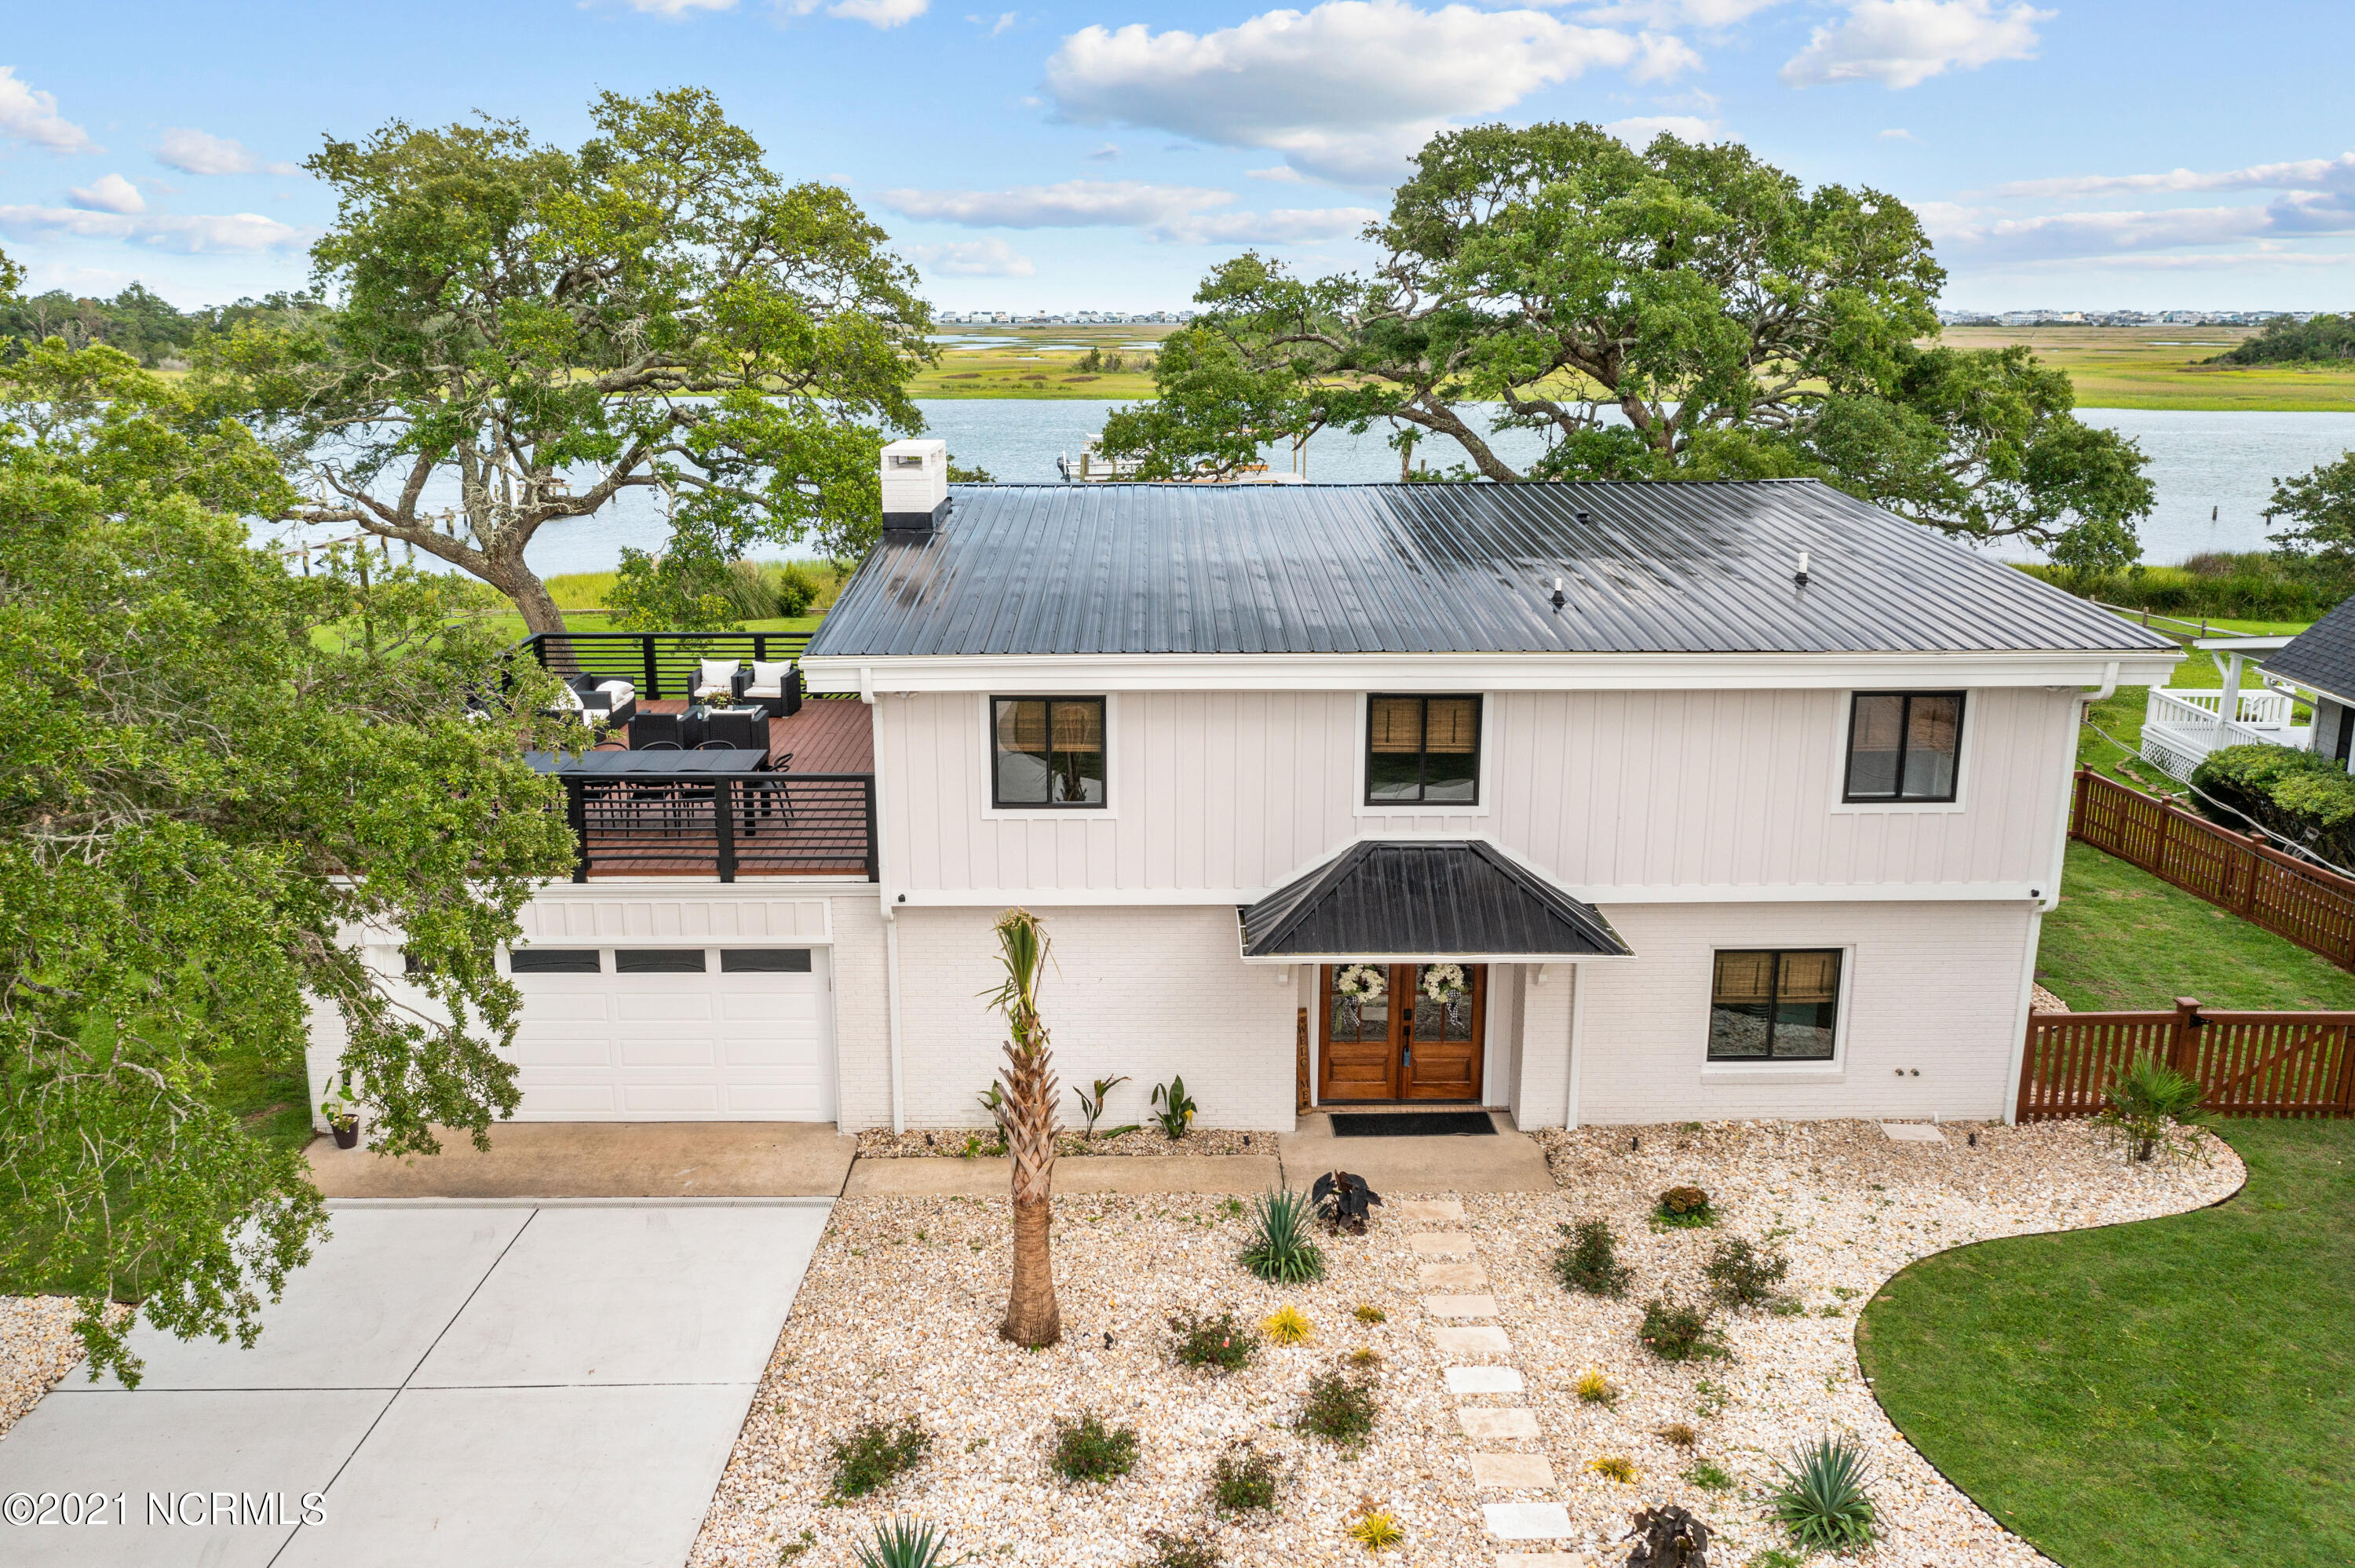 Exquisite waterfront home with private boat ramp, dock, 2 boat lifts, 3 wet slips, & stunning views of the Intracoastal Waterway. Located on a prime .64 acre lot, this 2,867 sqft, 4 bedroom, 3 full bathroom home is every boater's dream. Enjoy your coffee on the gazebo soaking up the coastal sunrise & end your day with a sunset cruise around the nearby inlets. Main floor features a desirable open floor layout, luxury vinyl plank flooring, shiplap details, painted wooden beams, & contemporary features. Stunning views of the ICW are visible from every angle. Kitchen features quartz countertops, GE Cafe Series appliances with a 6-burner gas range, a quartz/granite sink, & large center island. Step out onto the screened porch overlooking the waterway for a cozy afternoon or enjoy a cookout with friends & family on the spacious wooden deck. Incredible master suite boasts panoramic views of the ICW, a private screened porch, tile bathroom floors, dual vanities, freestanding soaking tub, & tiled shower with dual shower heads. A second bedroom & full bathroom complete the main floor. Downstairs is a large flex room complete with a wet bar, beverage fridge, and brick fireplace. Two bedrooms, a spacious full bathroom, & a sizable laundry room finish the interior. Sliding glass doors open up to a large patio overlooking live oak trees and the breathtaking water view. Private dock with power and water access leads to 5 boat slips--two 30' wet slips, two 10,000 lb remote-controlled boat lifts, and space for a 45' vessel with a private boat ramp deep enough to launch a 25' vessel. 15' deep at end of the gazebo. Property also includes a 201 sqft heated/cooled separate bunk house and a storage shed for all tools. Other features include a metal roof, fenced-in side yard, oversized two-car garage, new water softener, wide circular driveway, tankless water heater, & outdoor shower. Don't miss out on this incredible opportunity to own your coastal paradise--call today to make it yours!